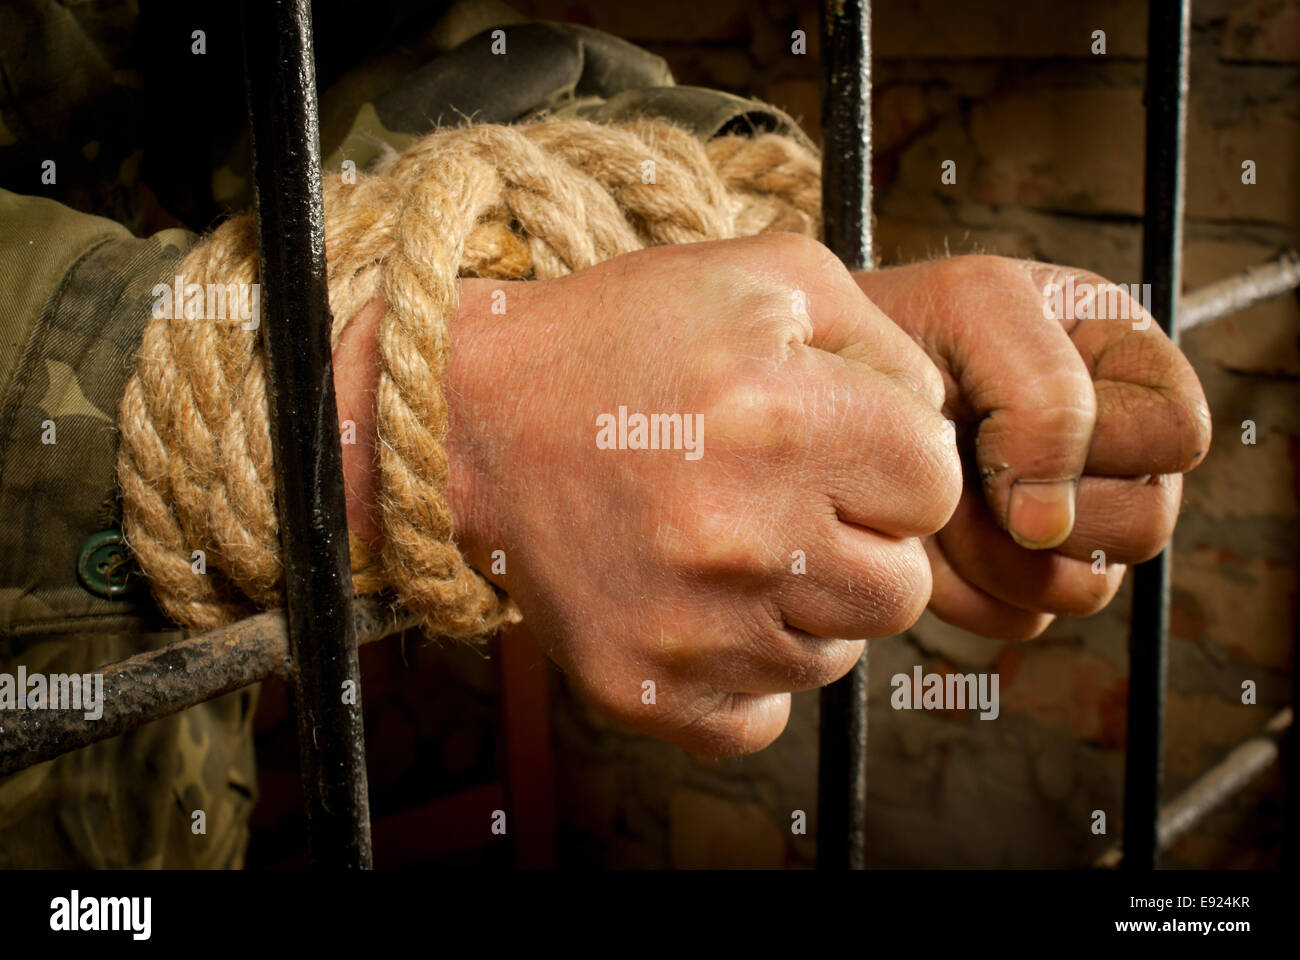 Hands of man tied up with rope - Stock Image